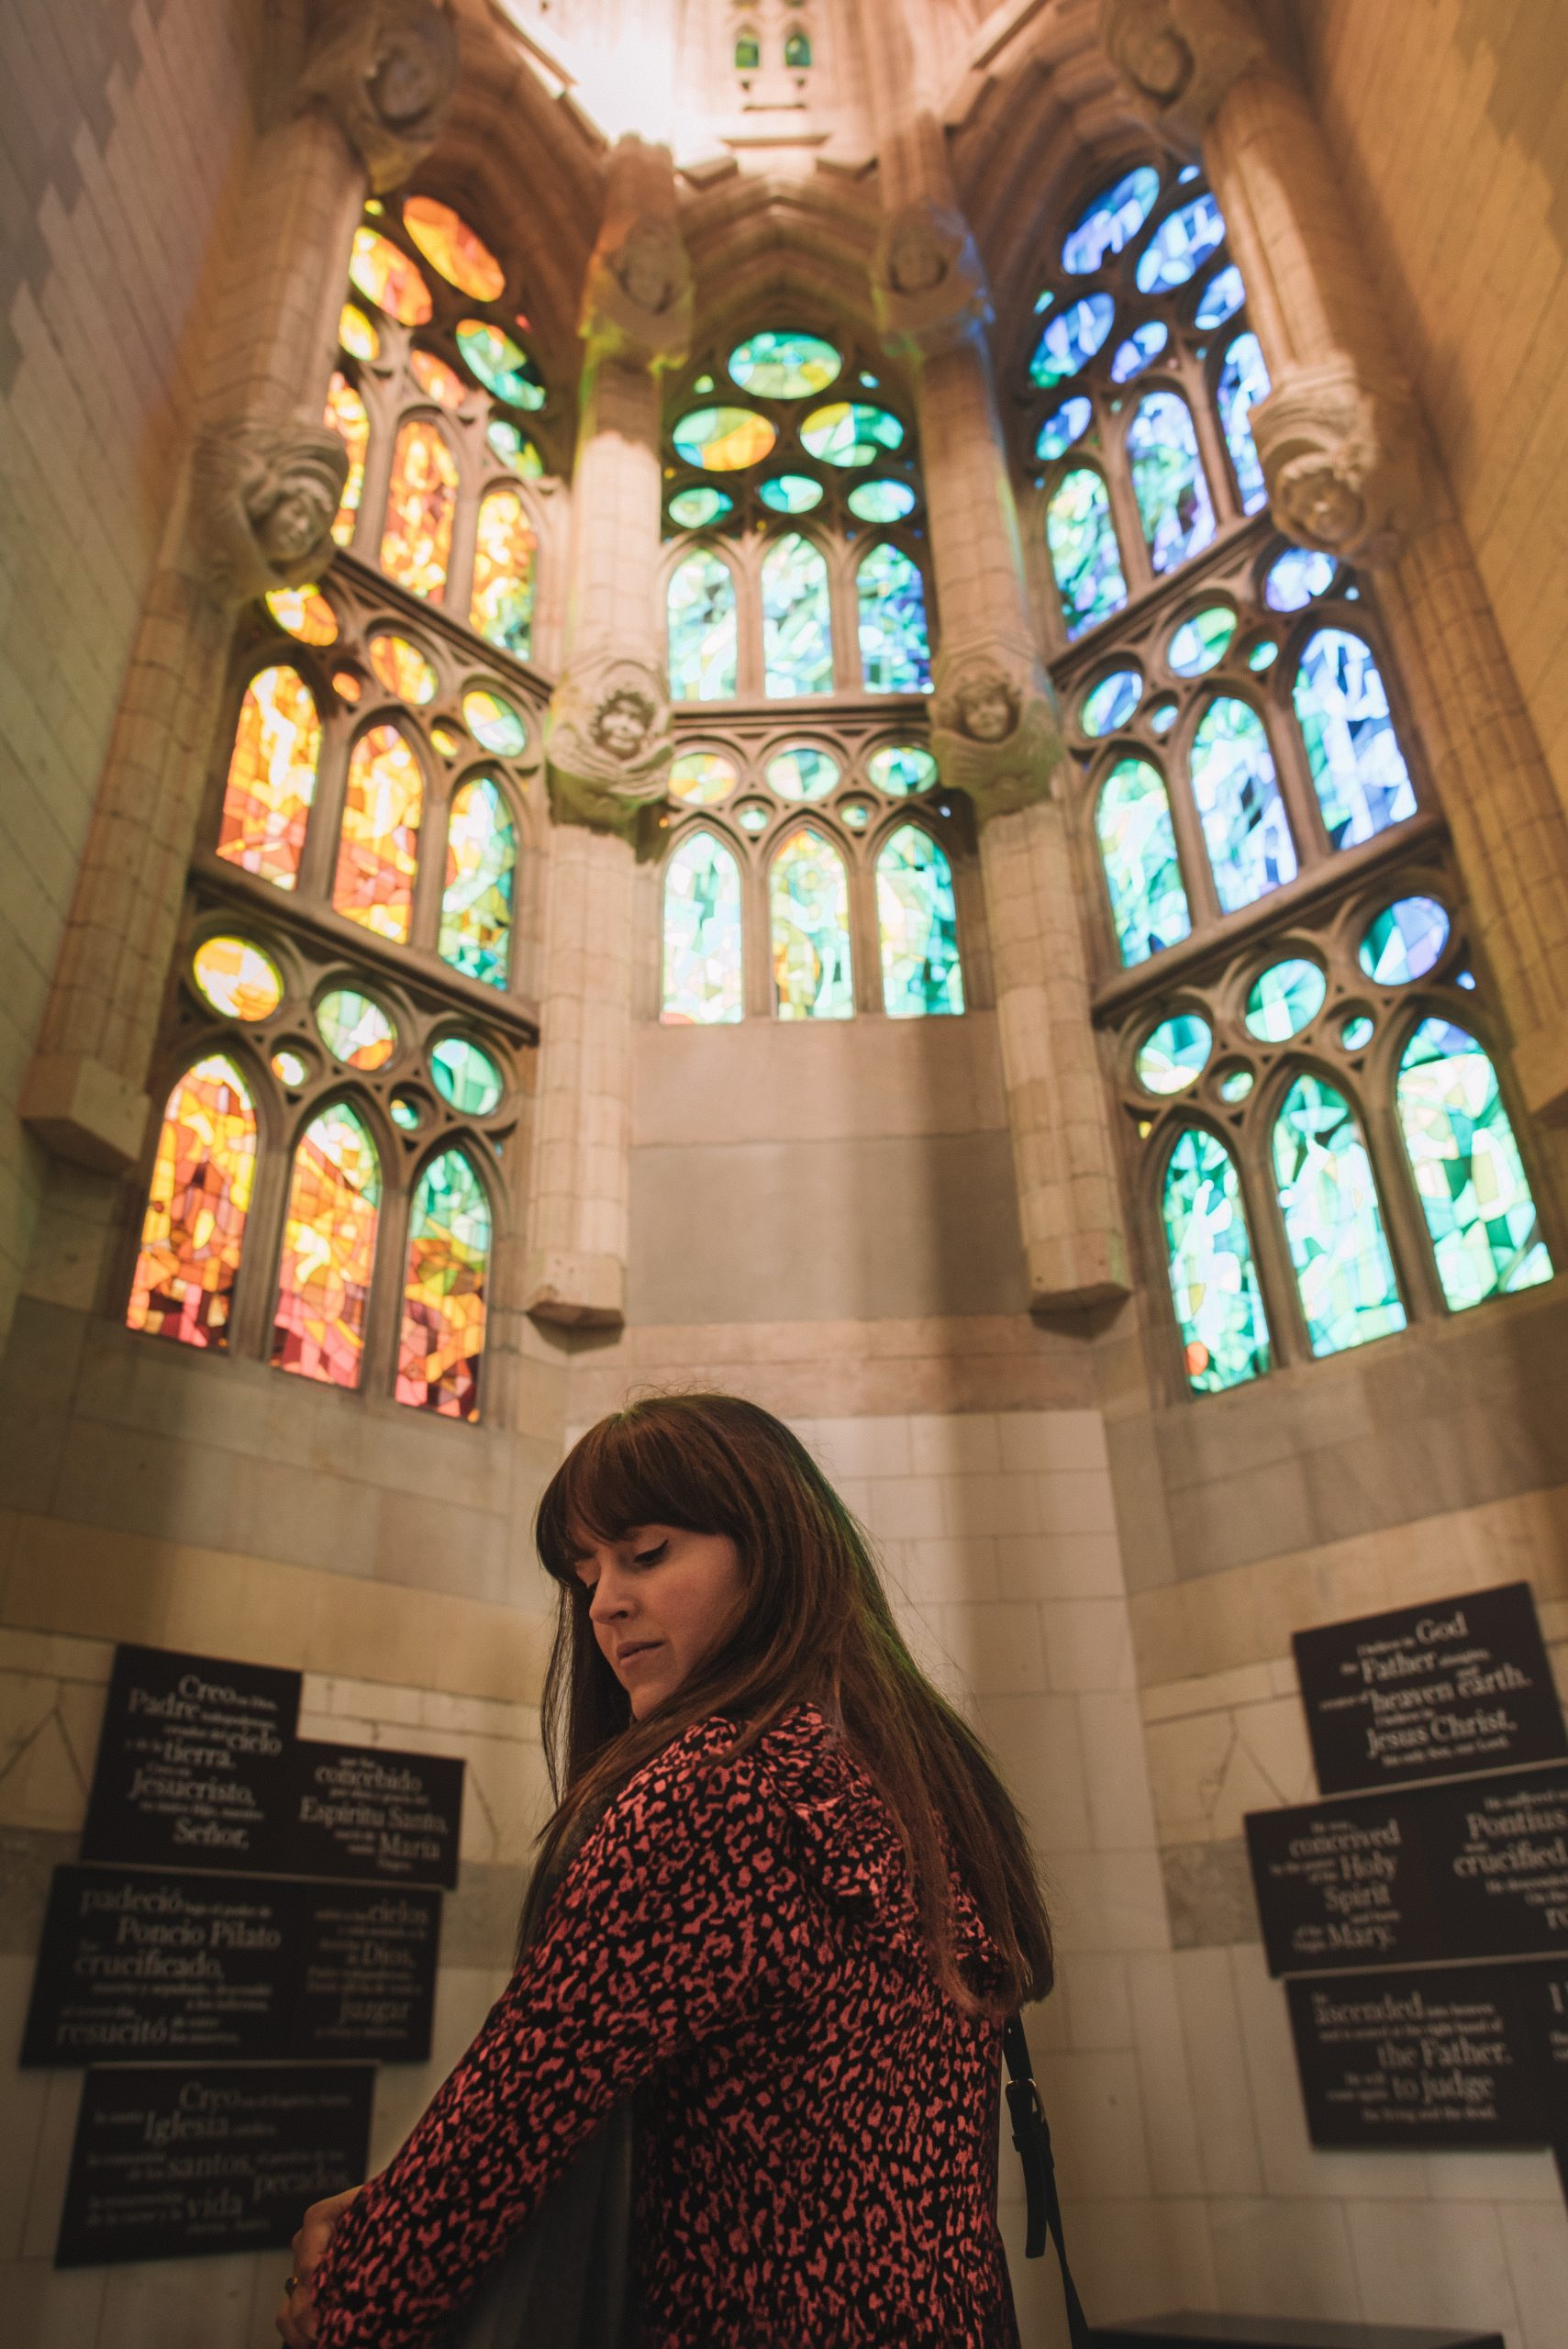 Sagrada Familia provides free entry to the mass every Sunday if you wish to attend.